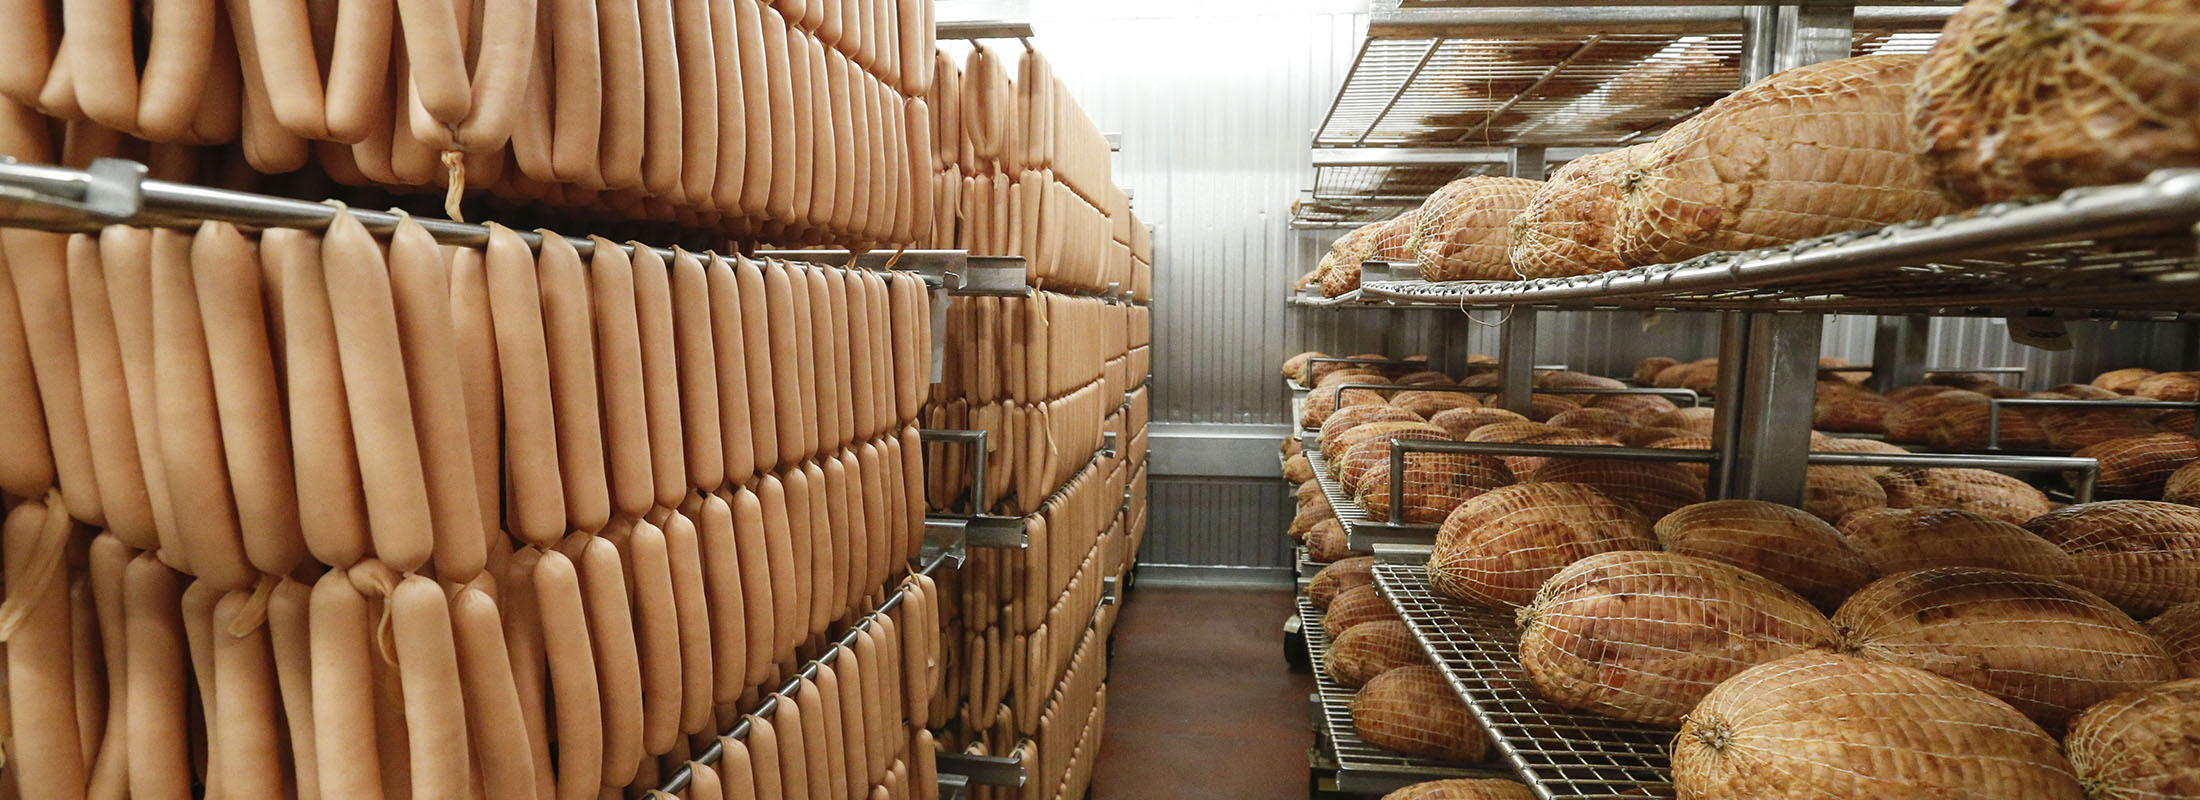 Racks of Sahlen's signature smokehouse hot dogs, left, and smoked hams are lined up in the packaging area at the Sahlen Packing Co, which has operated on Howard Street in Buffalo since 1869. (Derek Gee/Buffalo News)